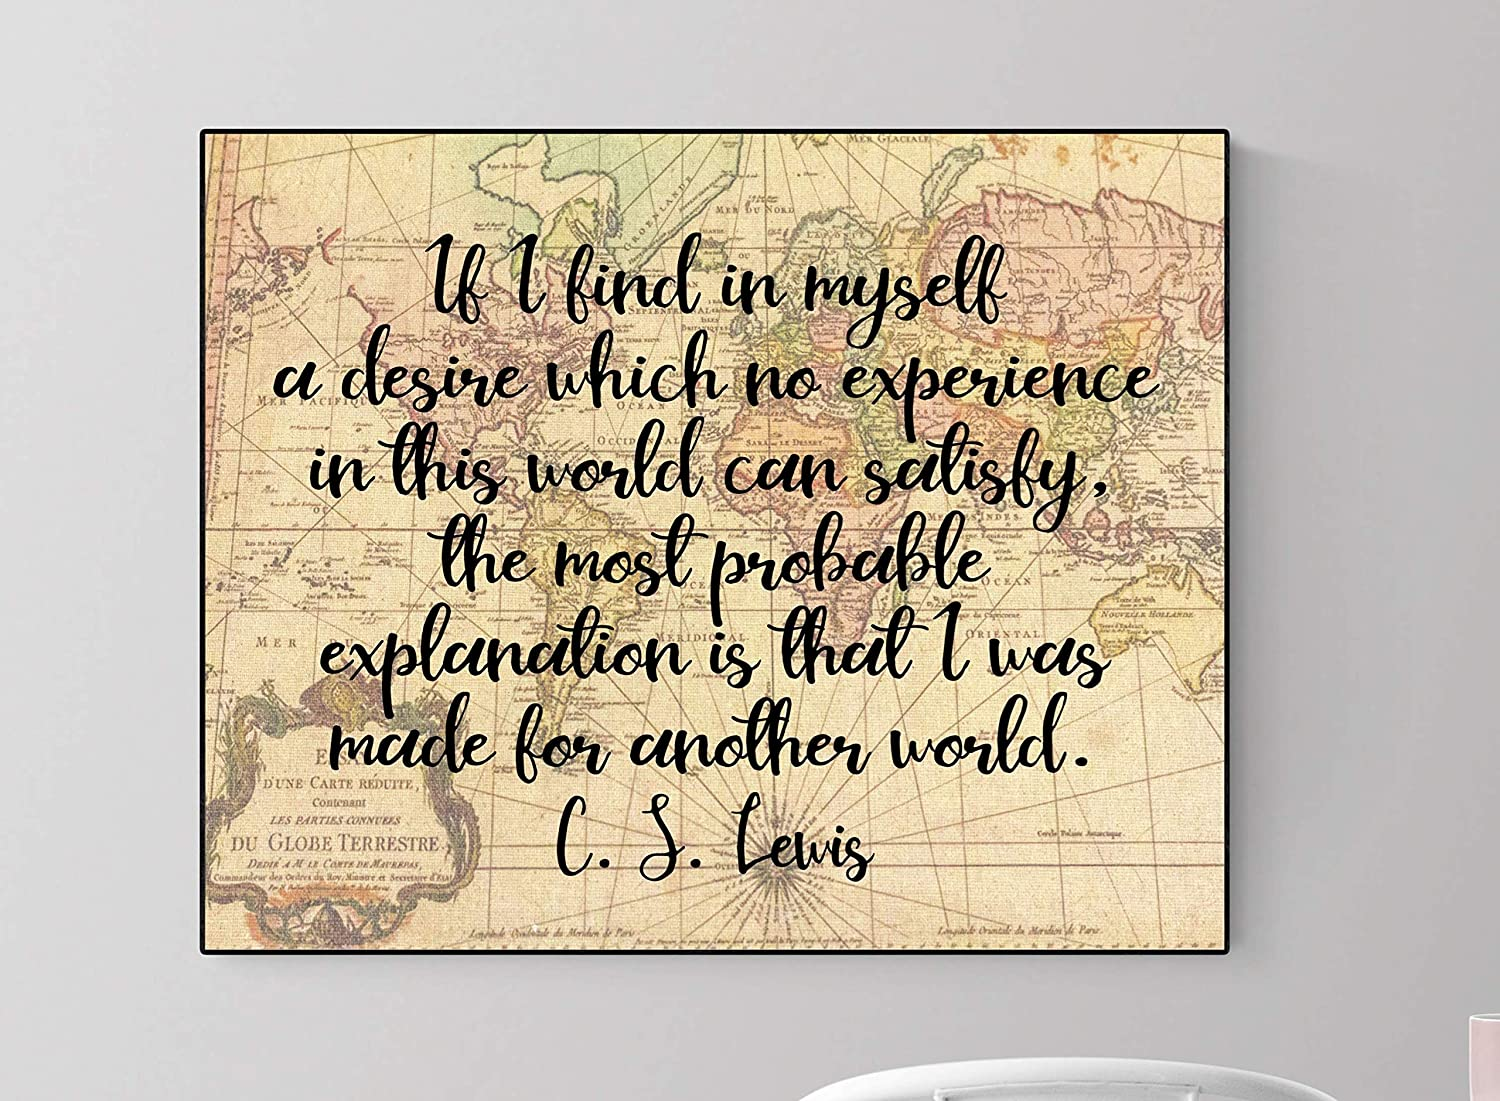 CS Lewis Made for Another World | Art Print (8x10)